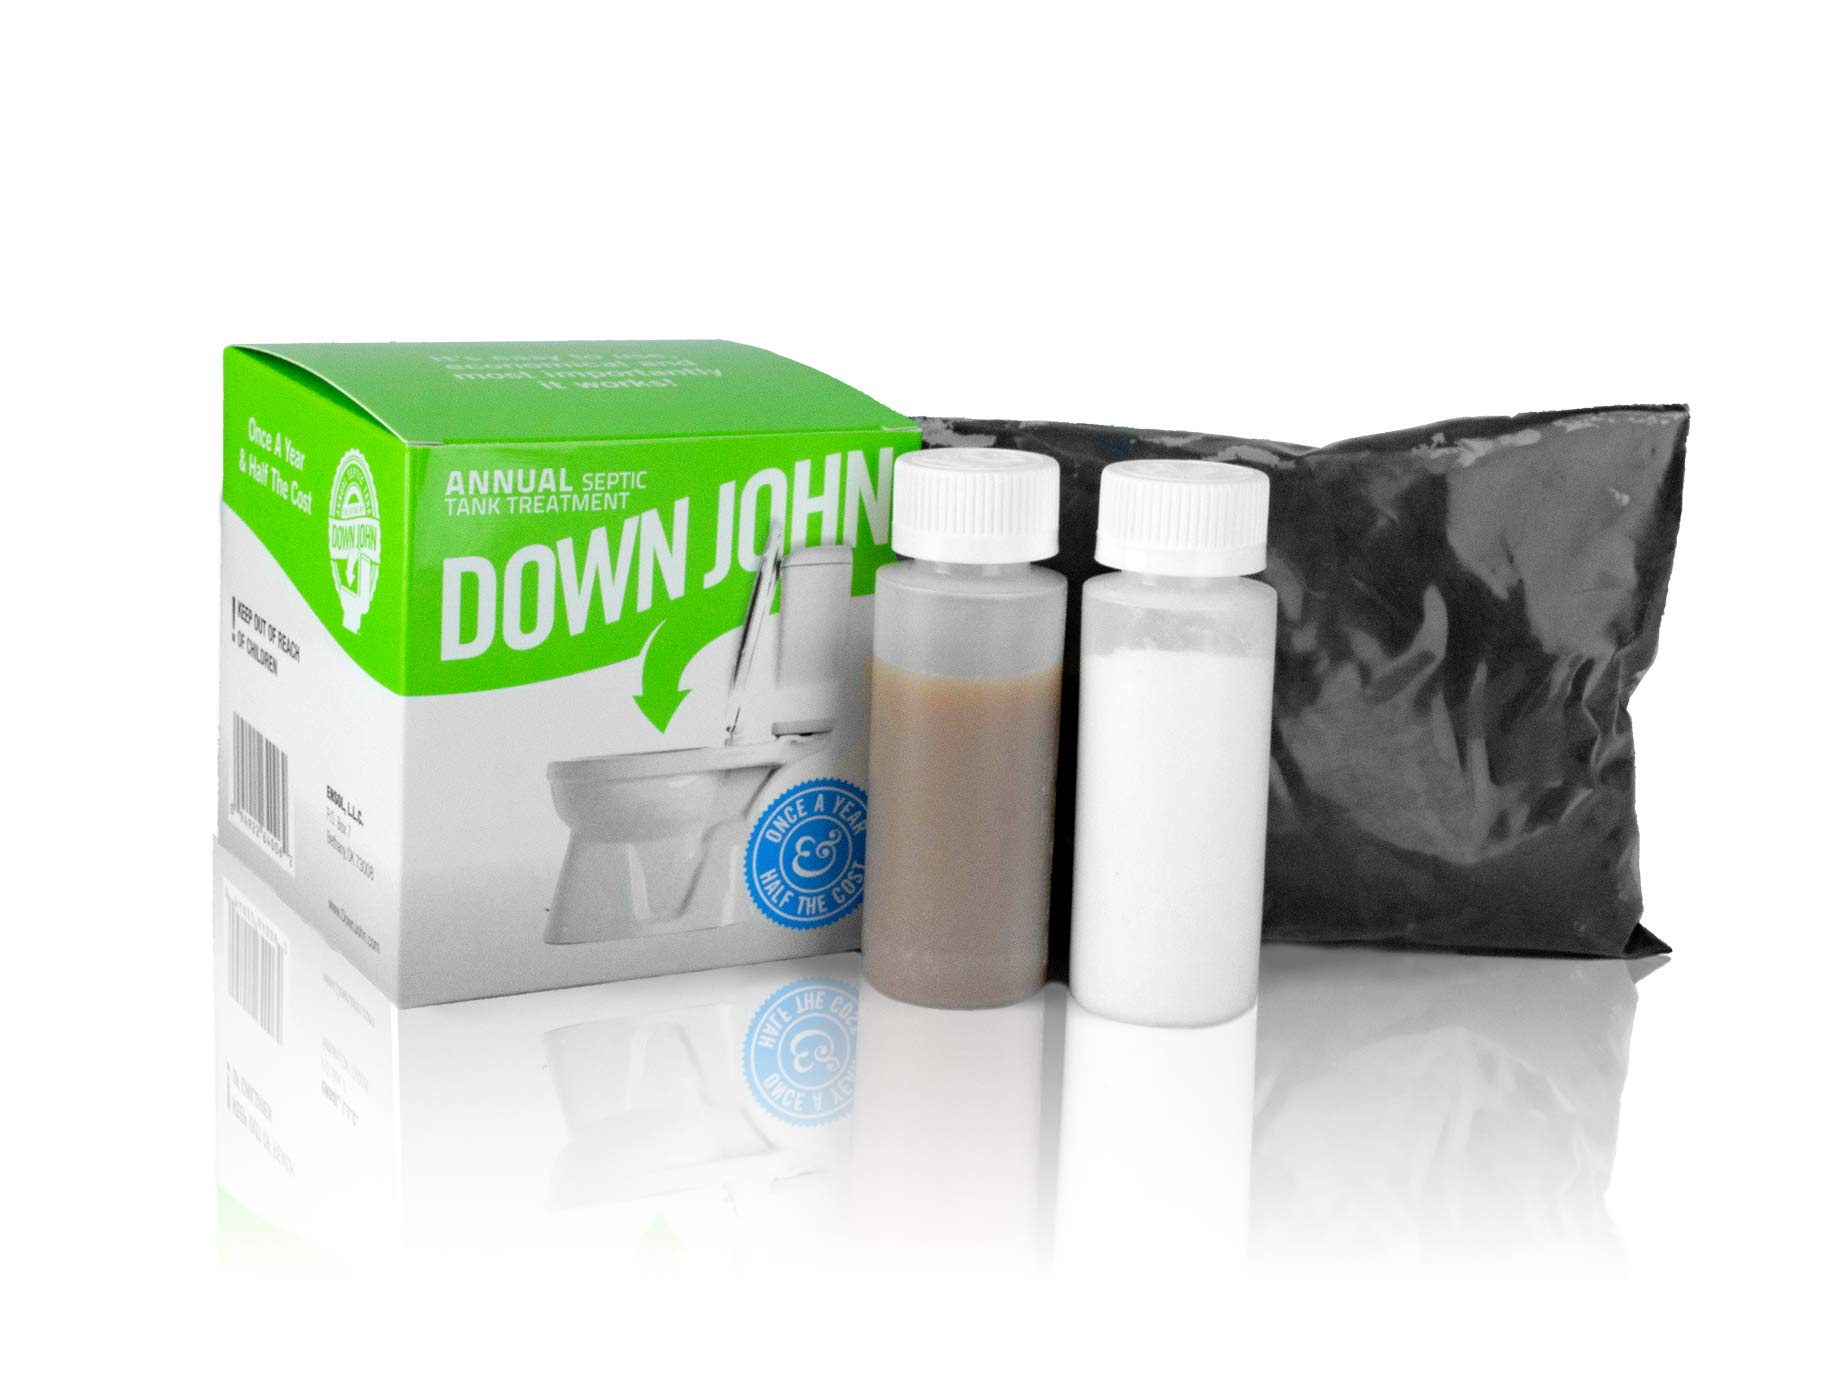 Down John Septic Tank Treatment (Once-a-Year) Live Bacteria, Grease-Eating Enzymes and Stabilizing Carbon - Additive Stops Odor and Backups, Cleans and Restores Septic Tank Systems and Drain Fields by Down John